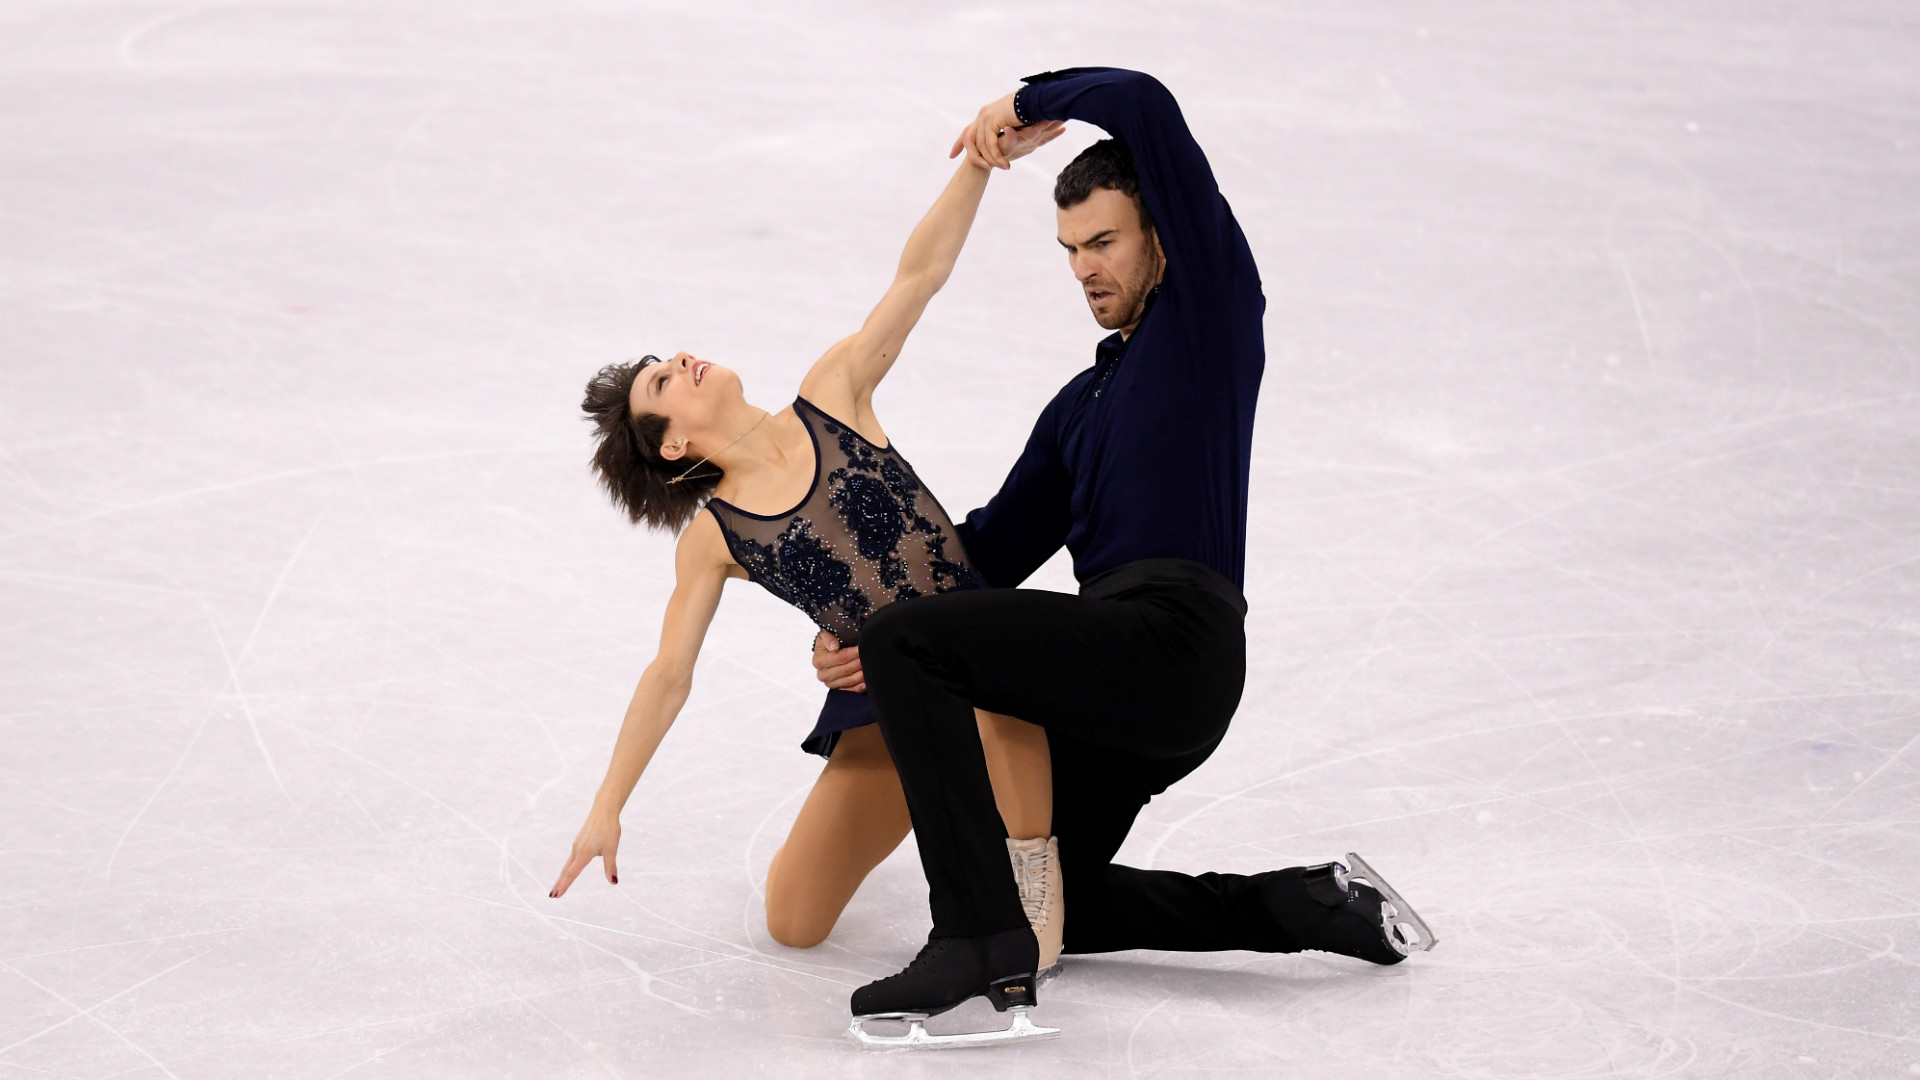 Canadian Figure Skater Eric Radford Took Home The Gold